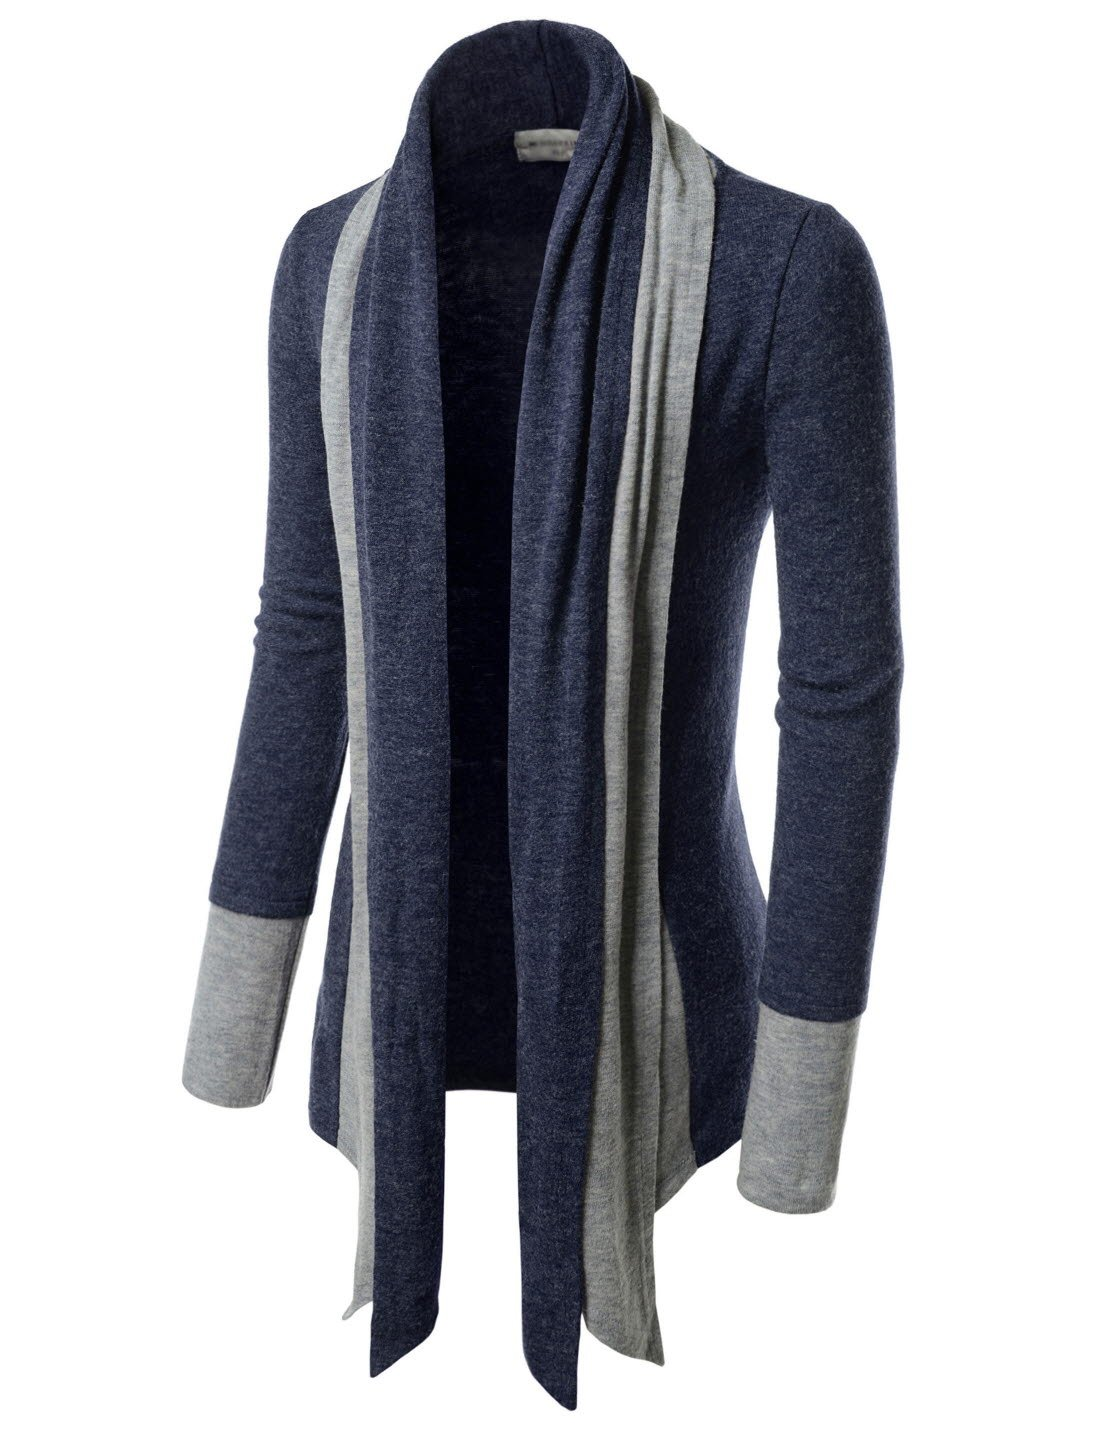 TheLees (NKCD94) Open Front Double Shawl Collar Cardigan Sweaters NAVY US XXXL(Tag size 3XL)